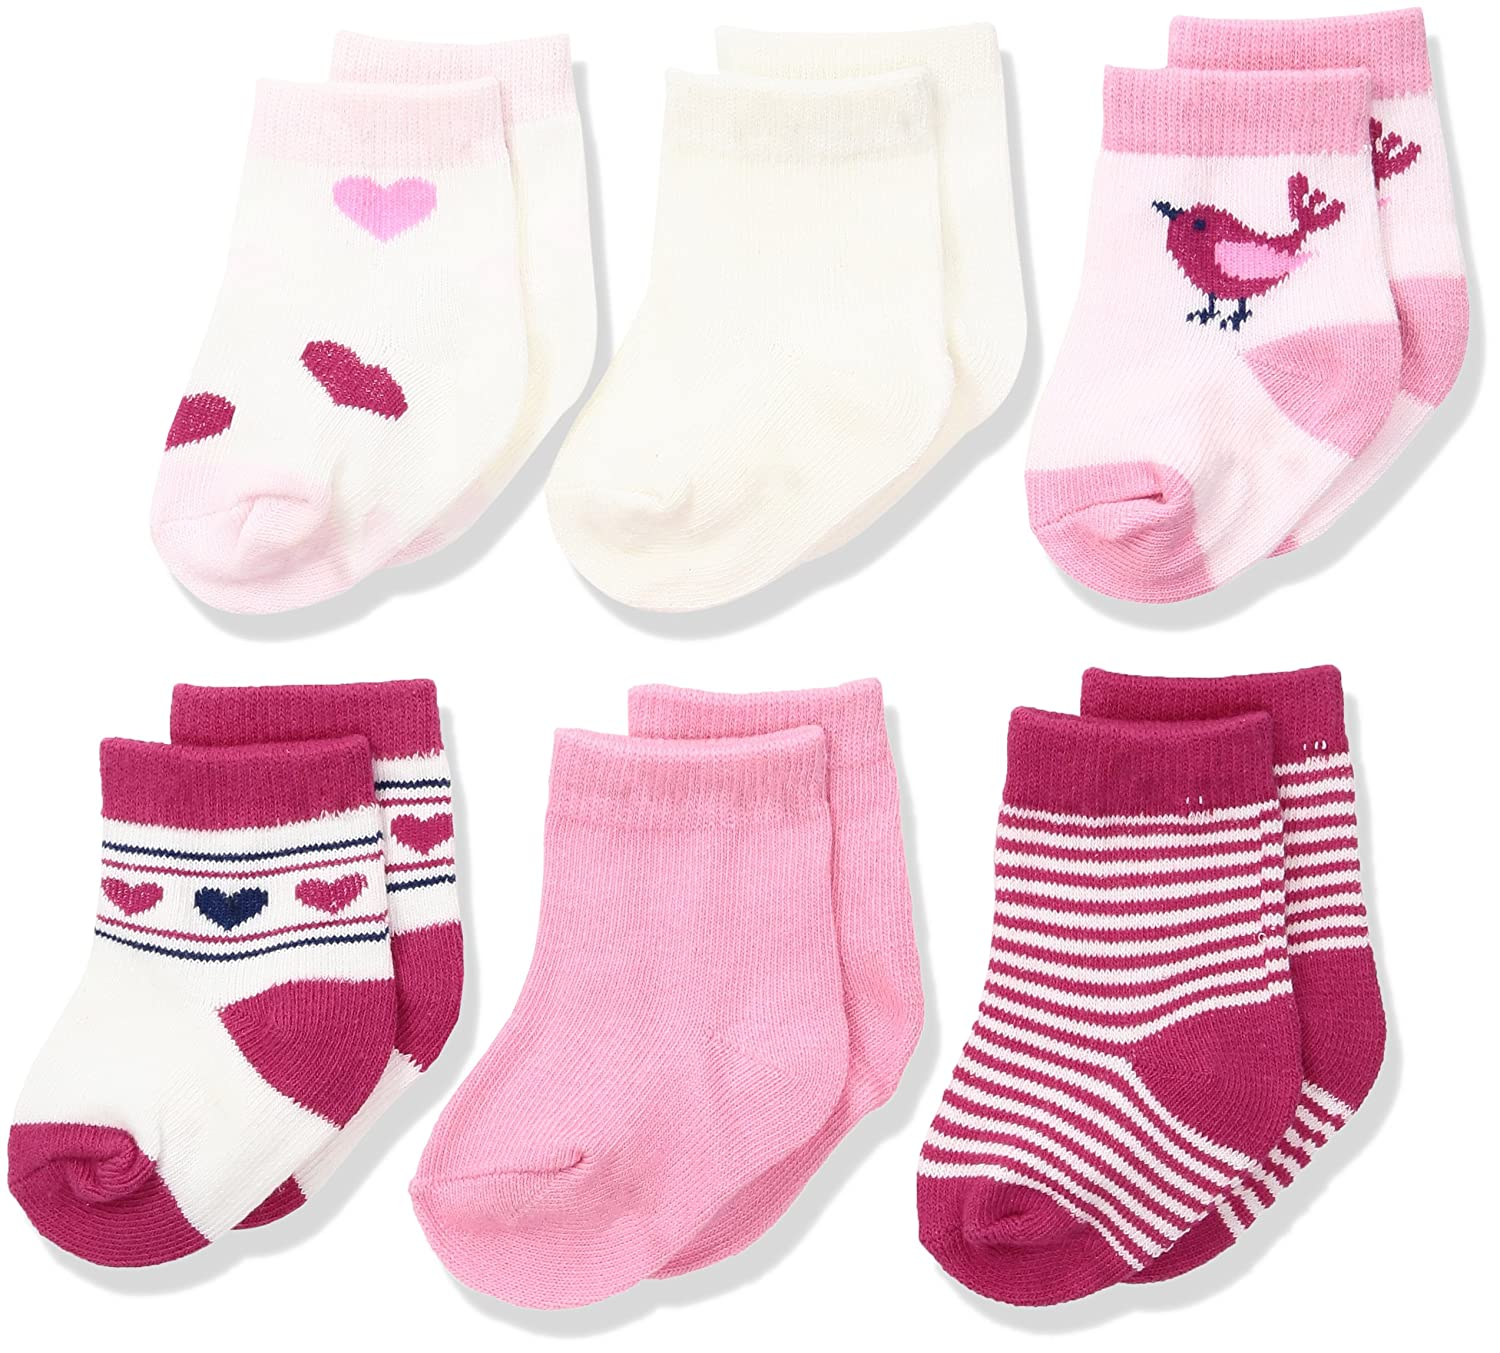 Amazon Rene Rofe Baby Baby 6 Pair of Socks on Header Card Clothing